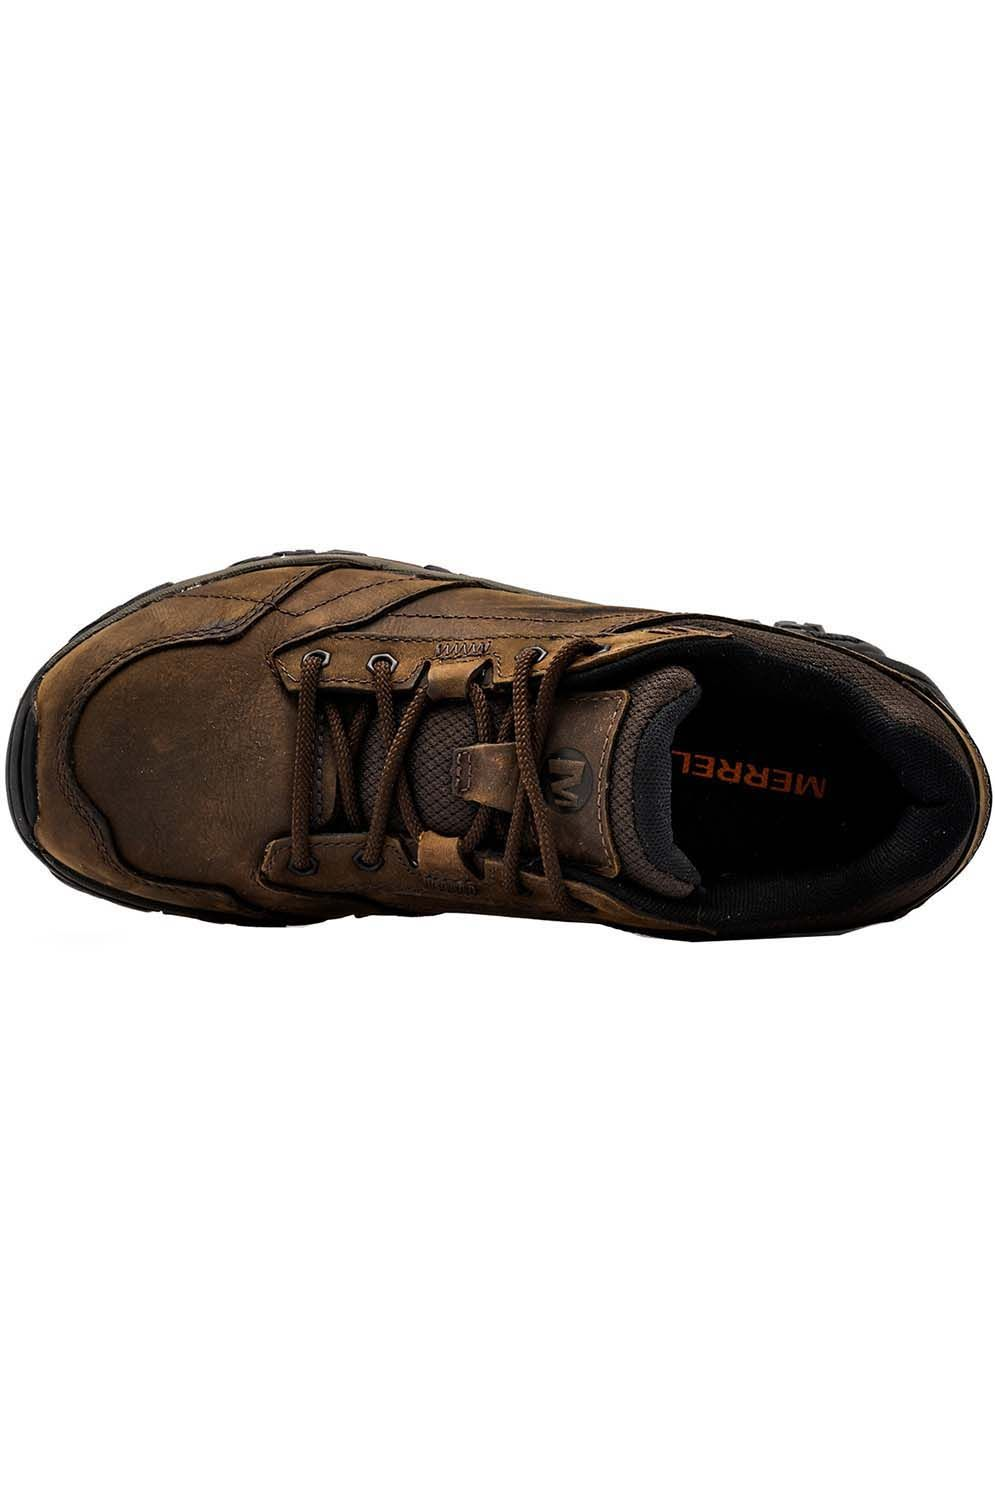 Merrell Shoes MOAB ADVENTURE LACE Dark Earth